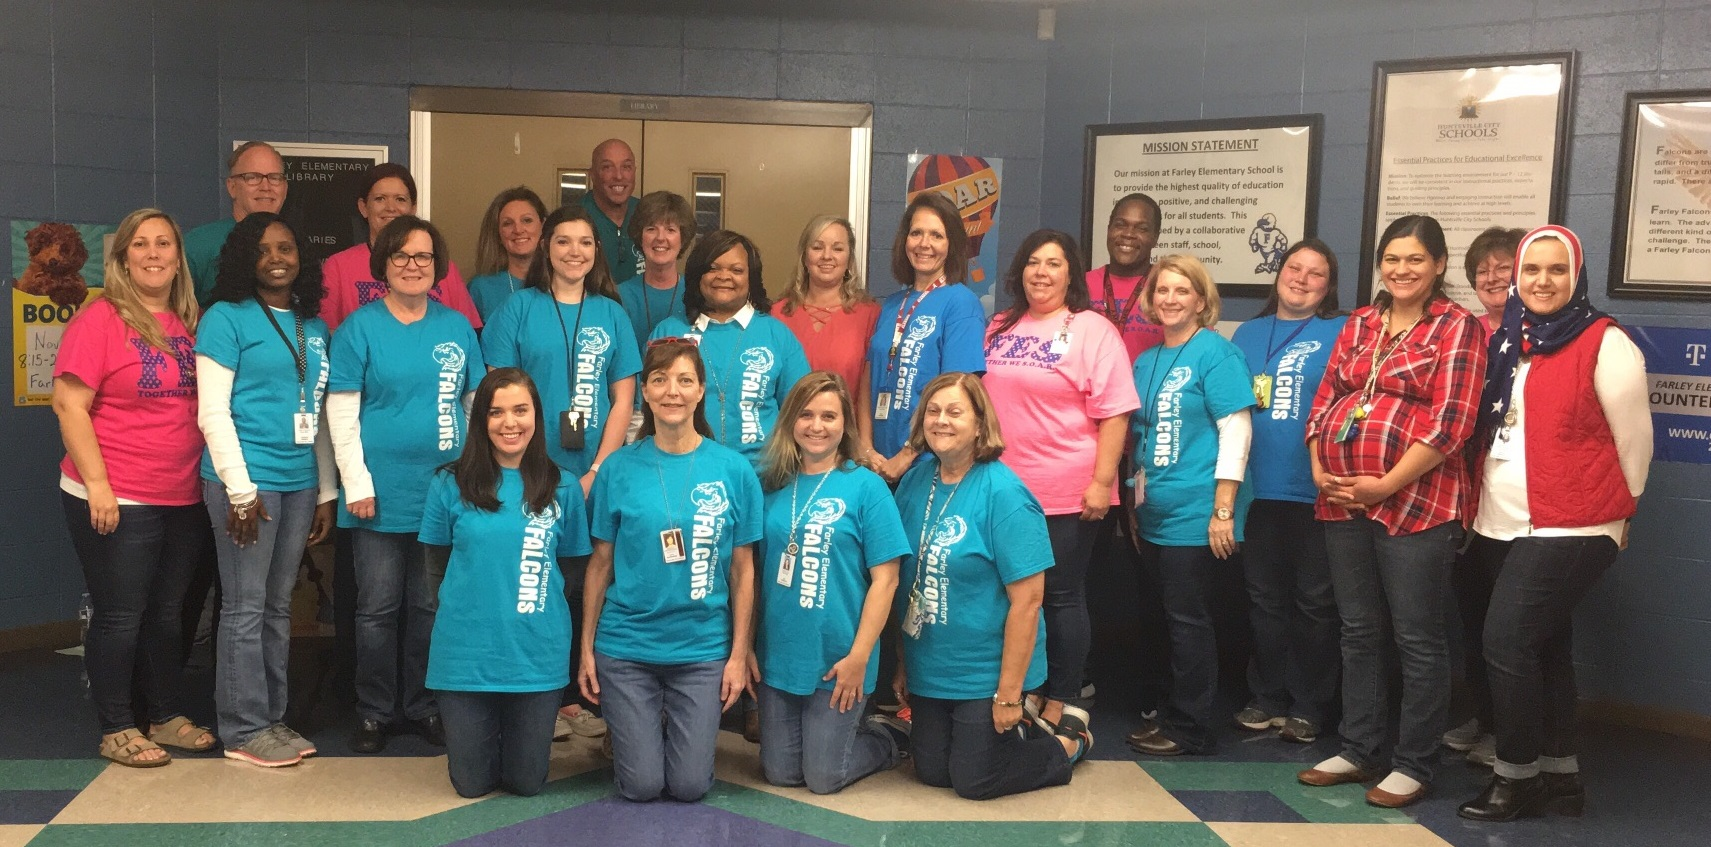 Farley Elementary staff and teachers pose with jeans to show support for Troops for Jeans